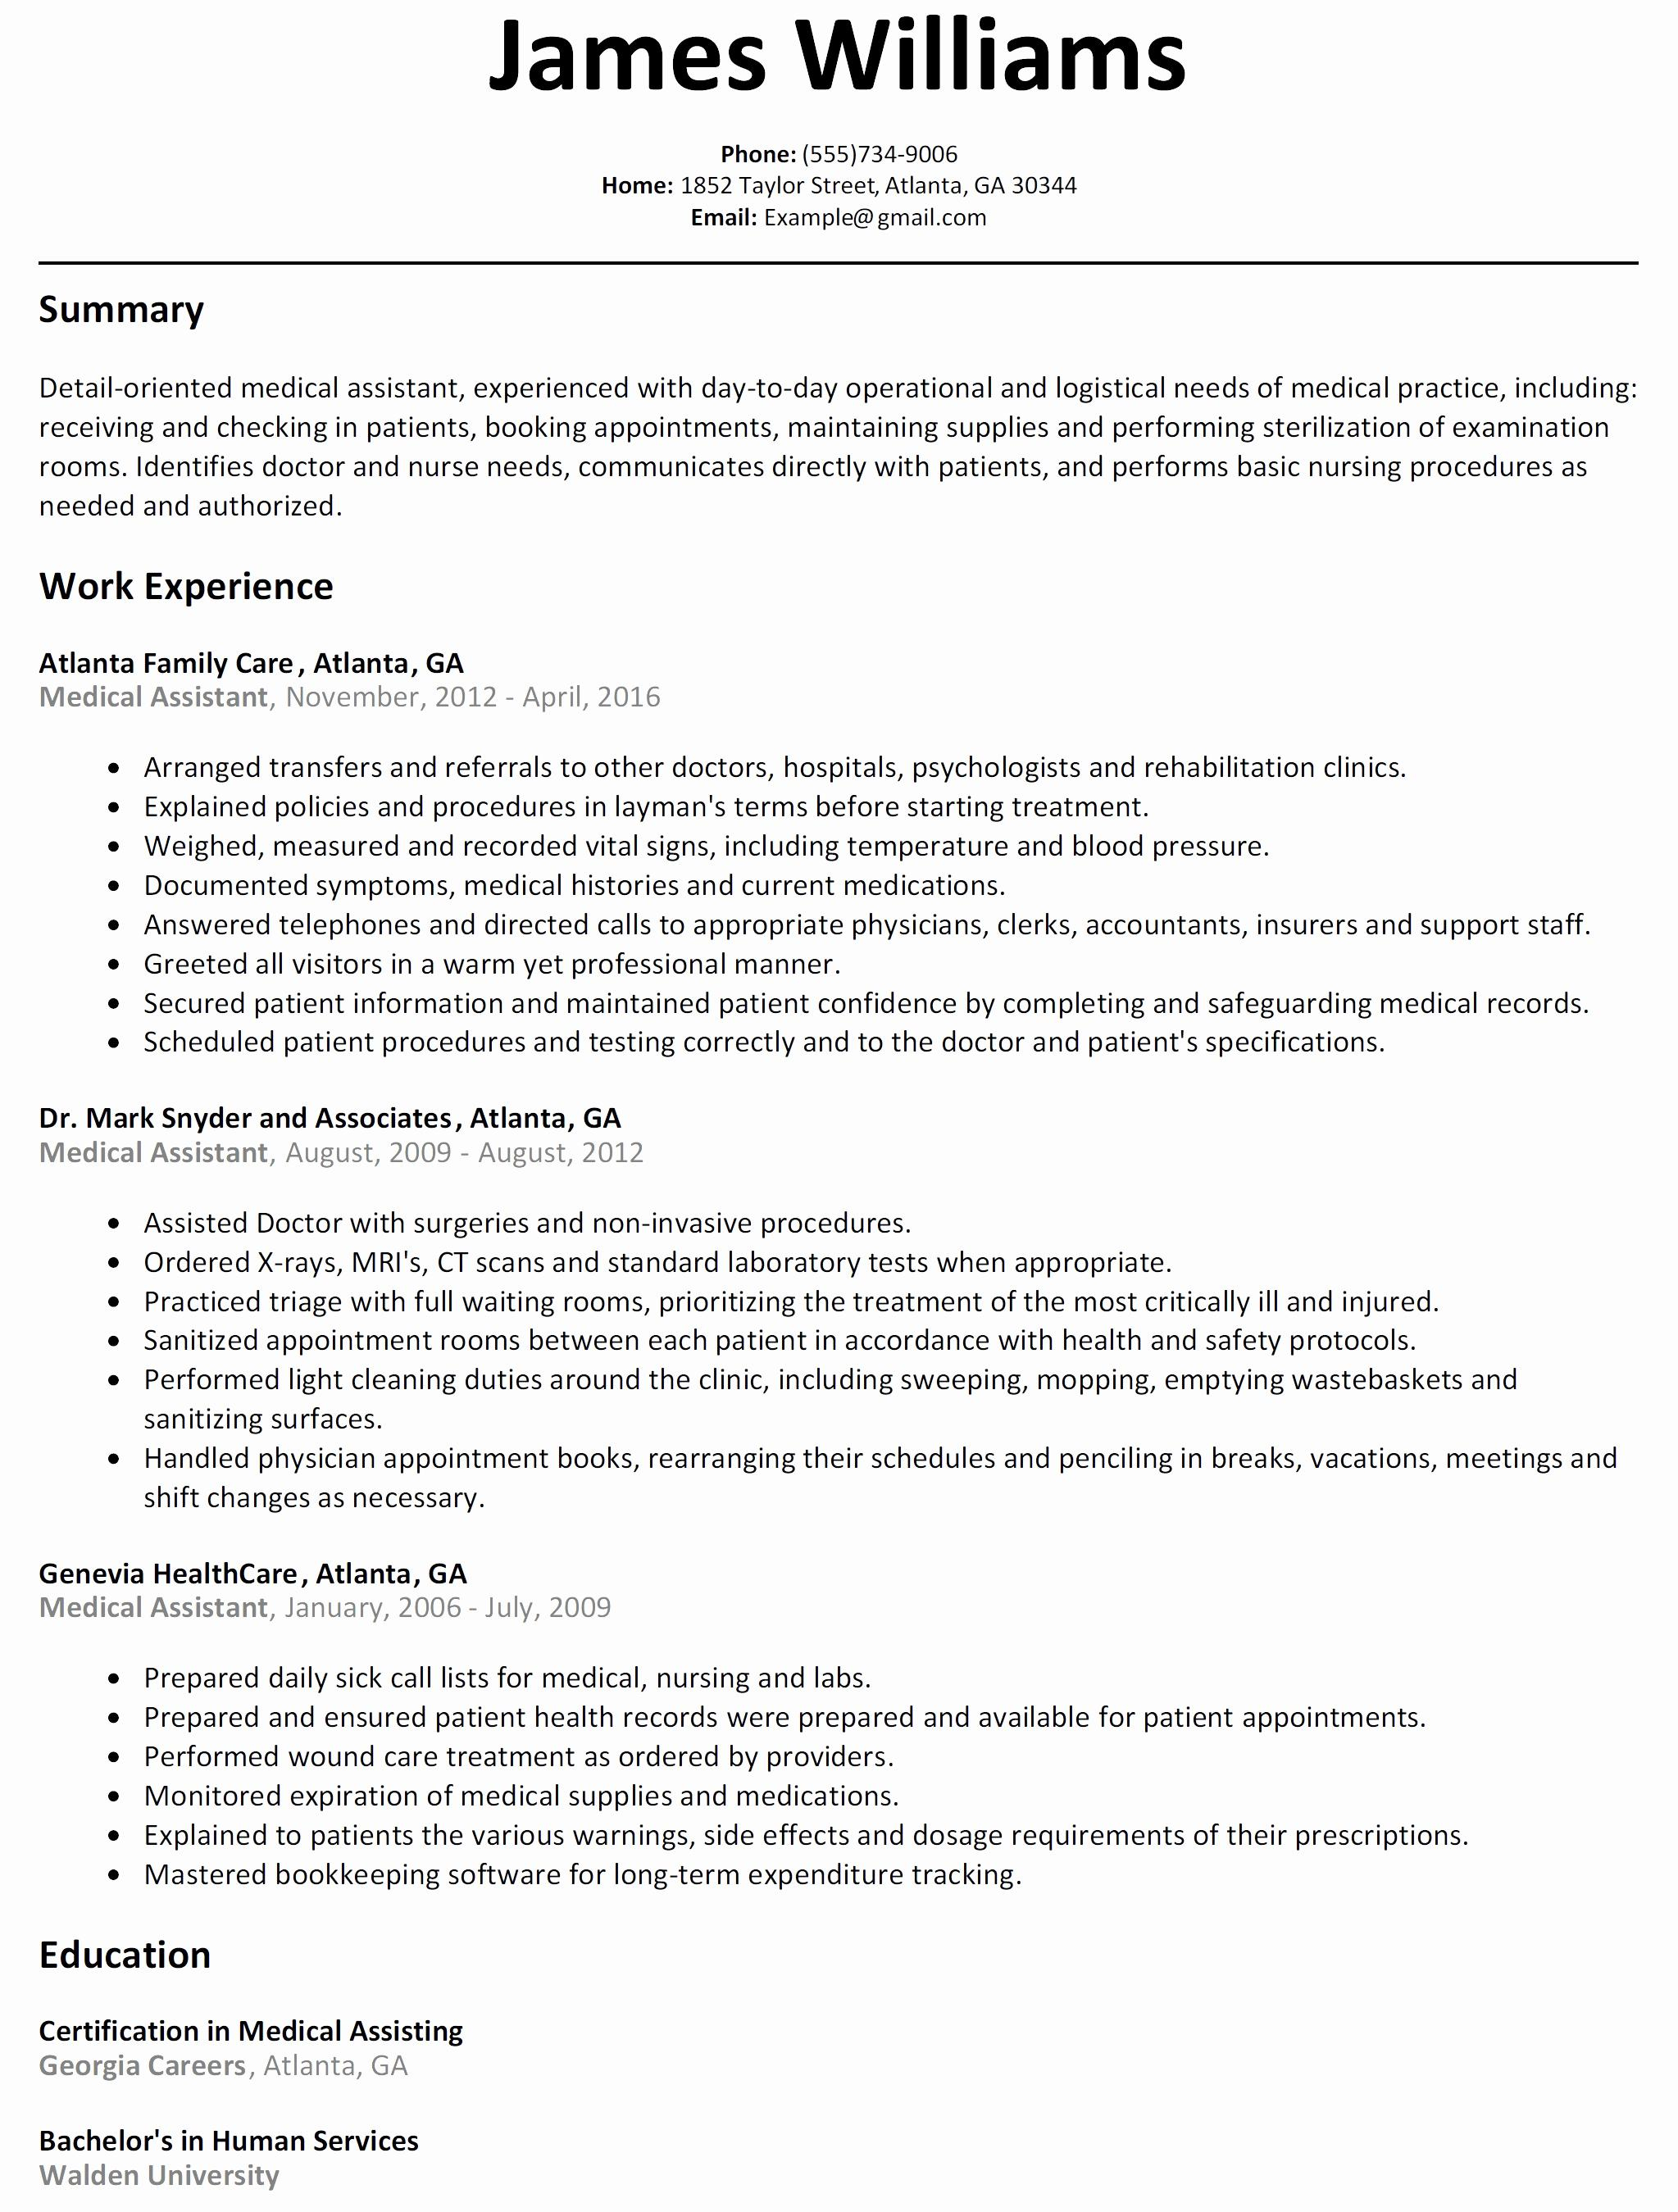 Law School Resume Template Word - Resume Template Free Word Beautiful Best Resume Templates Word New